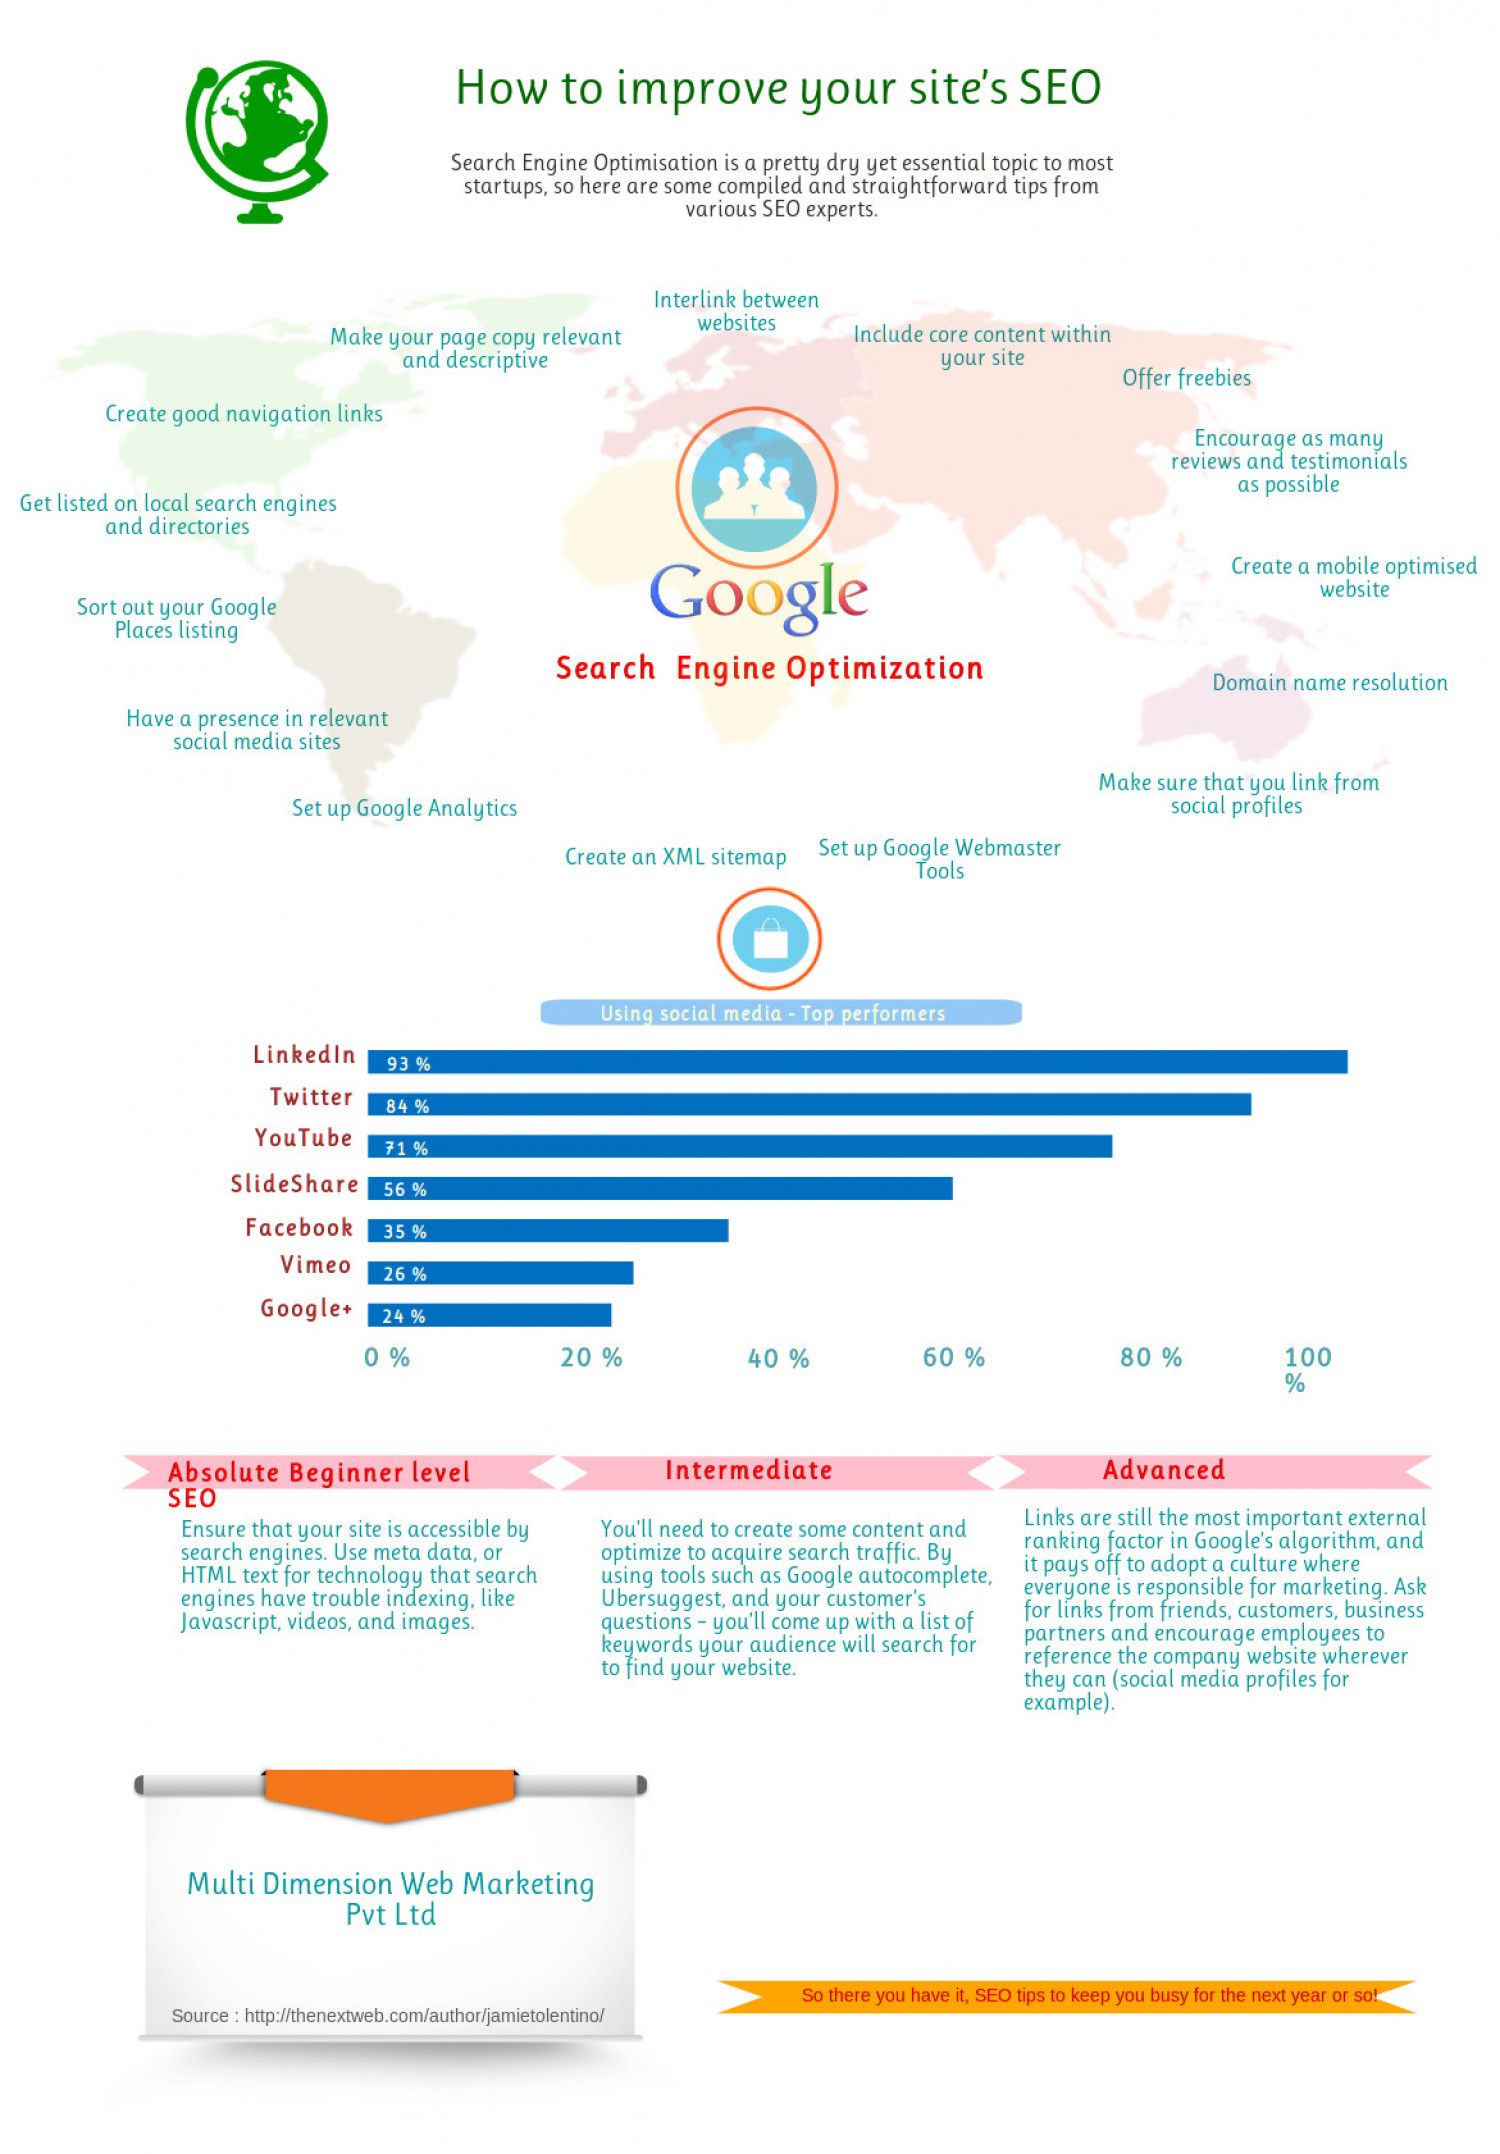 How to Improve your site 's SEO Infographic